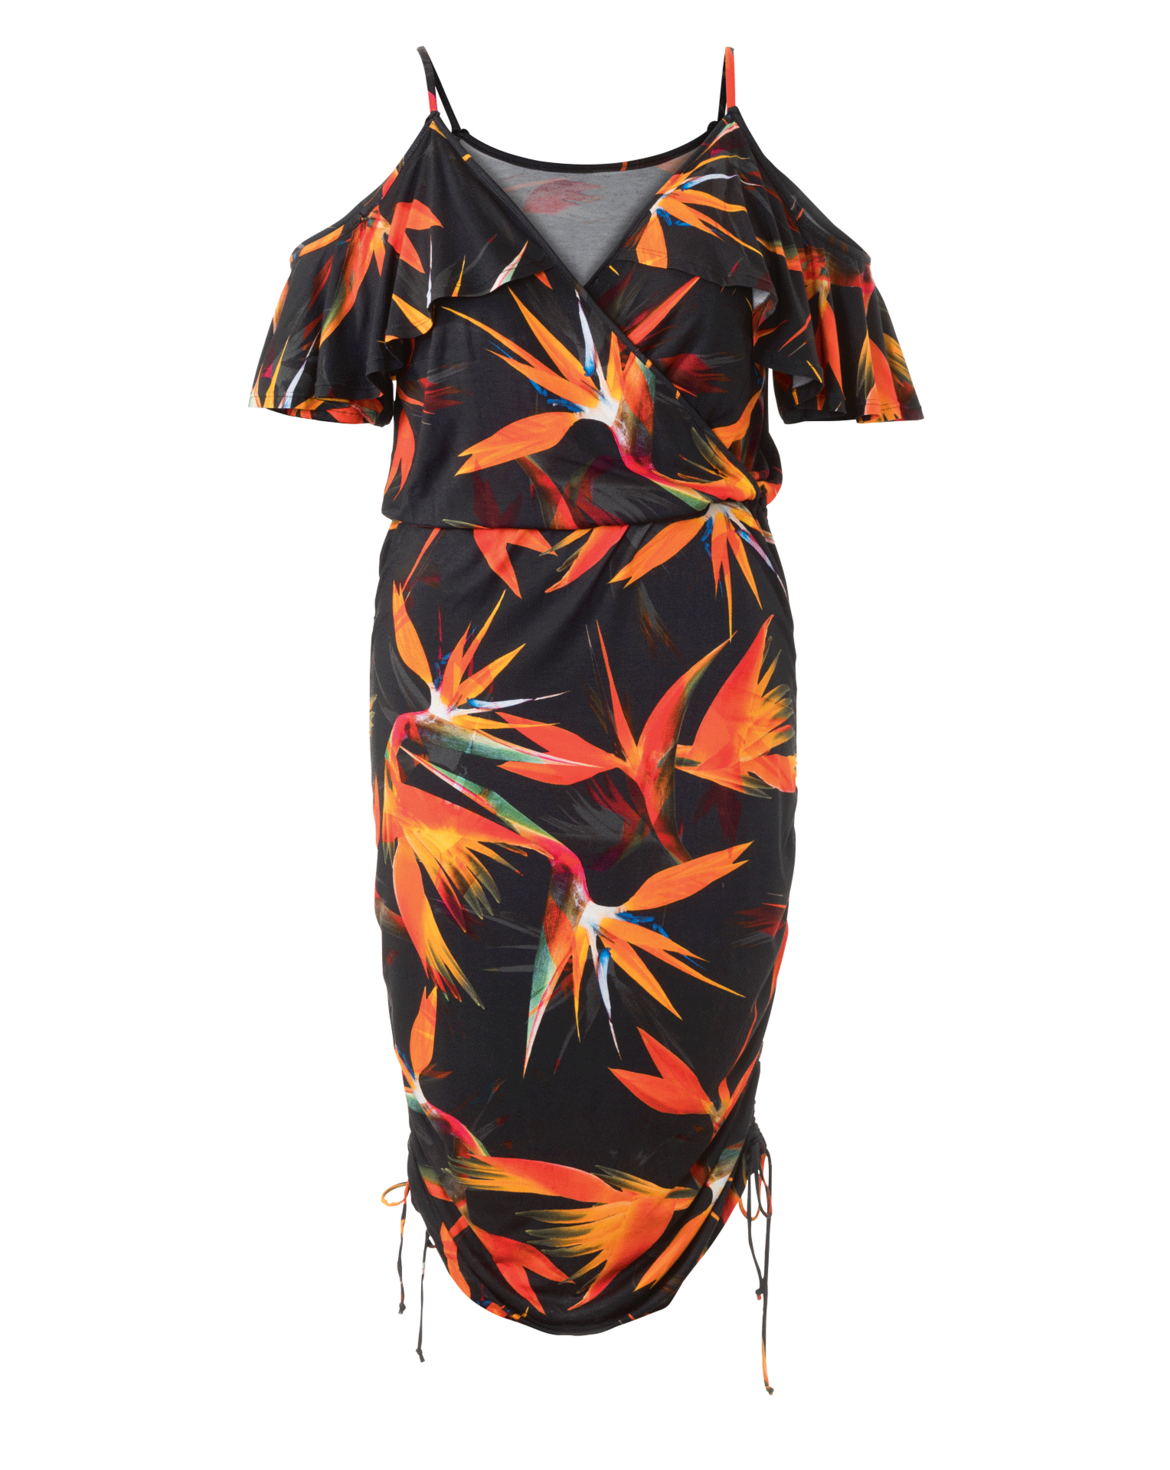 Schnittmuster Jerseykleid F/S 2017 #406A